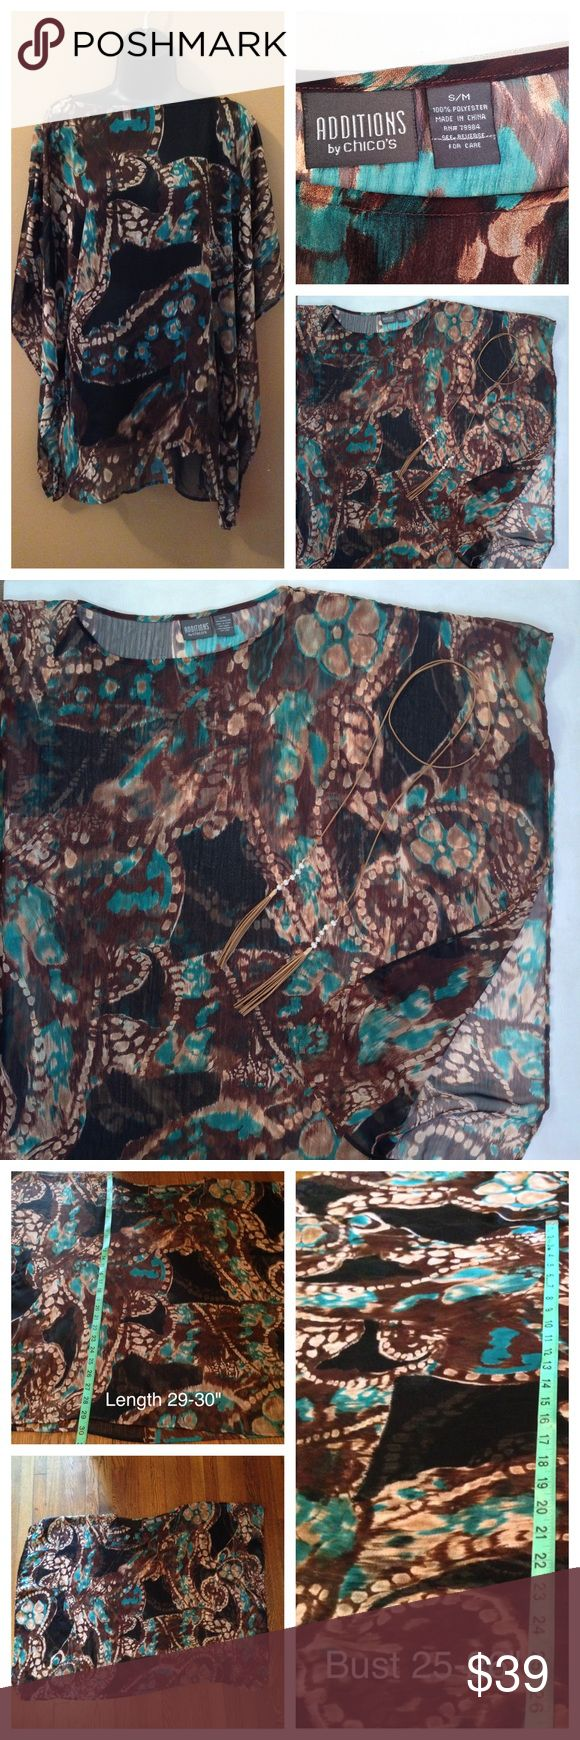 CHICOS Abstract Chiffon Poncho Batwing Top MEASUREMENTS IN PHOTOS. Size S/M though its oversized and can fit an XS-XL. Chocolate brown, black, and turquoise abstract print. Semi-sheer. Lots of flow and movement! Large batwing dolman armholes. Great condition! Chico's Tops